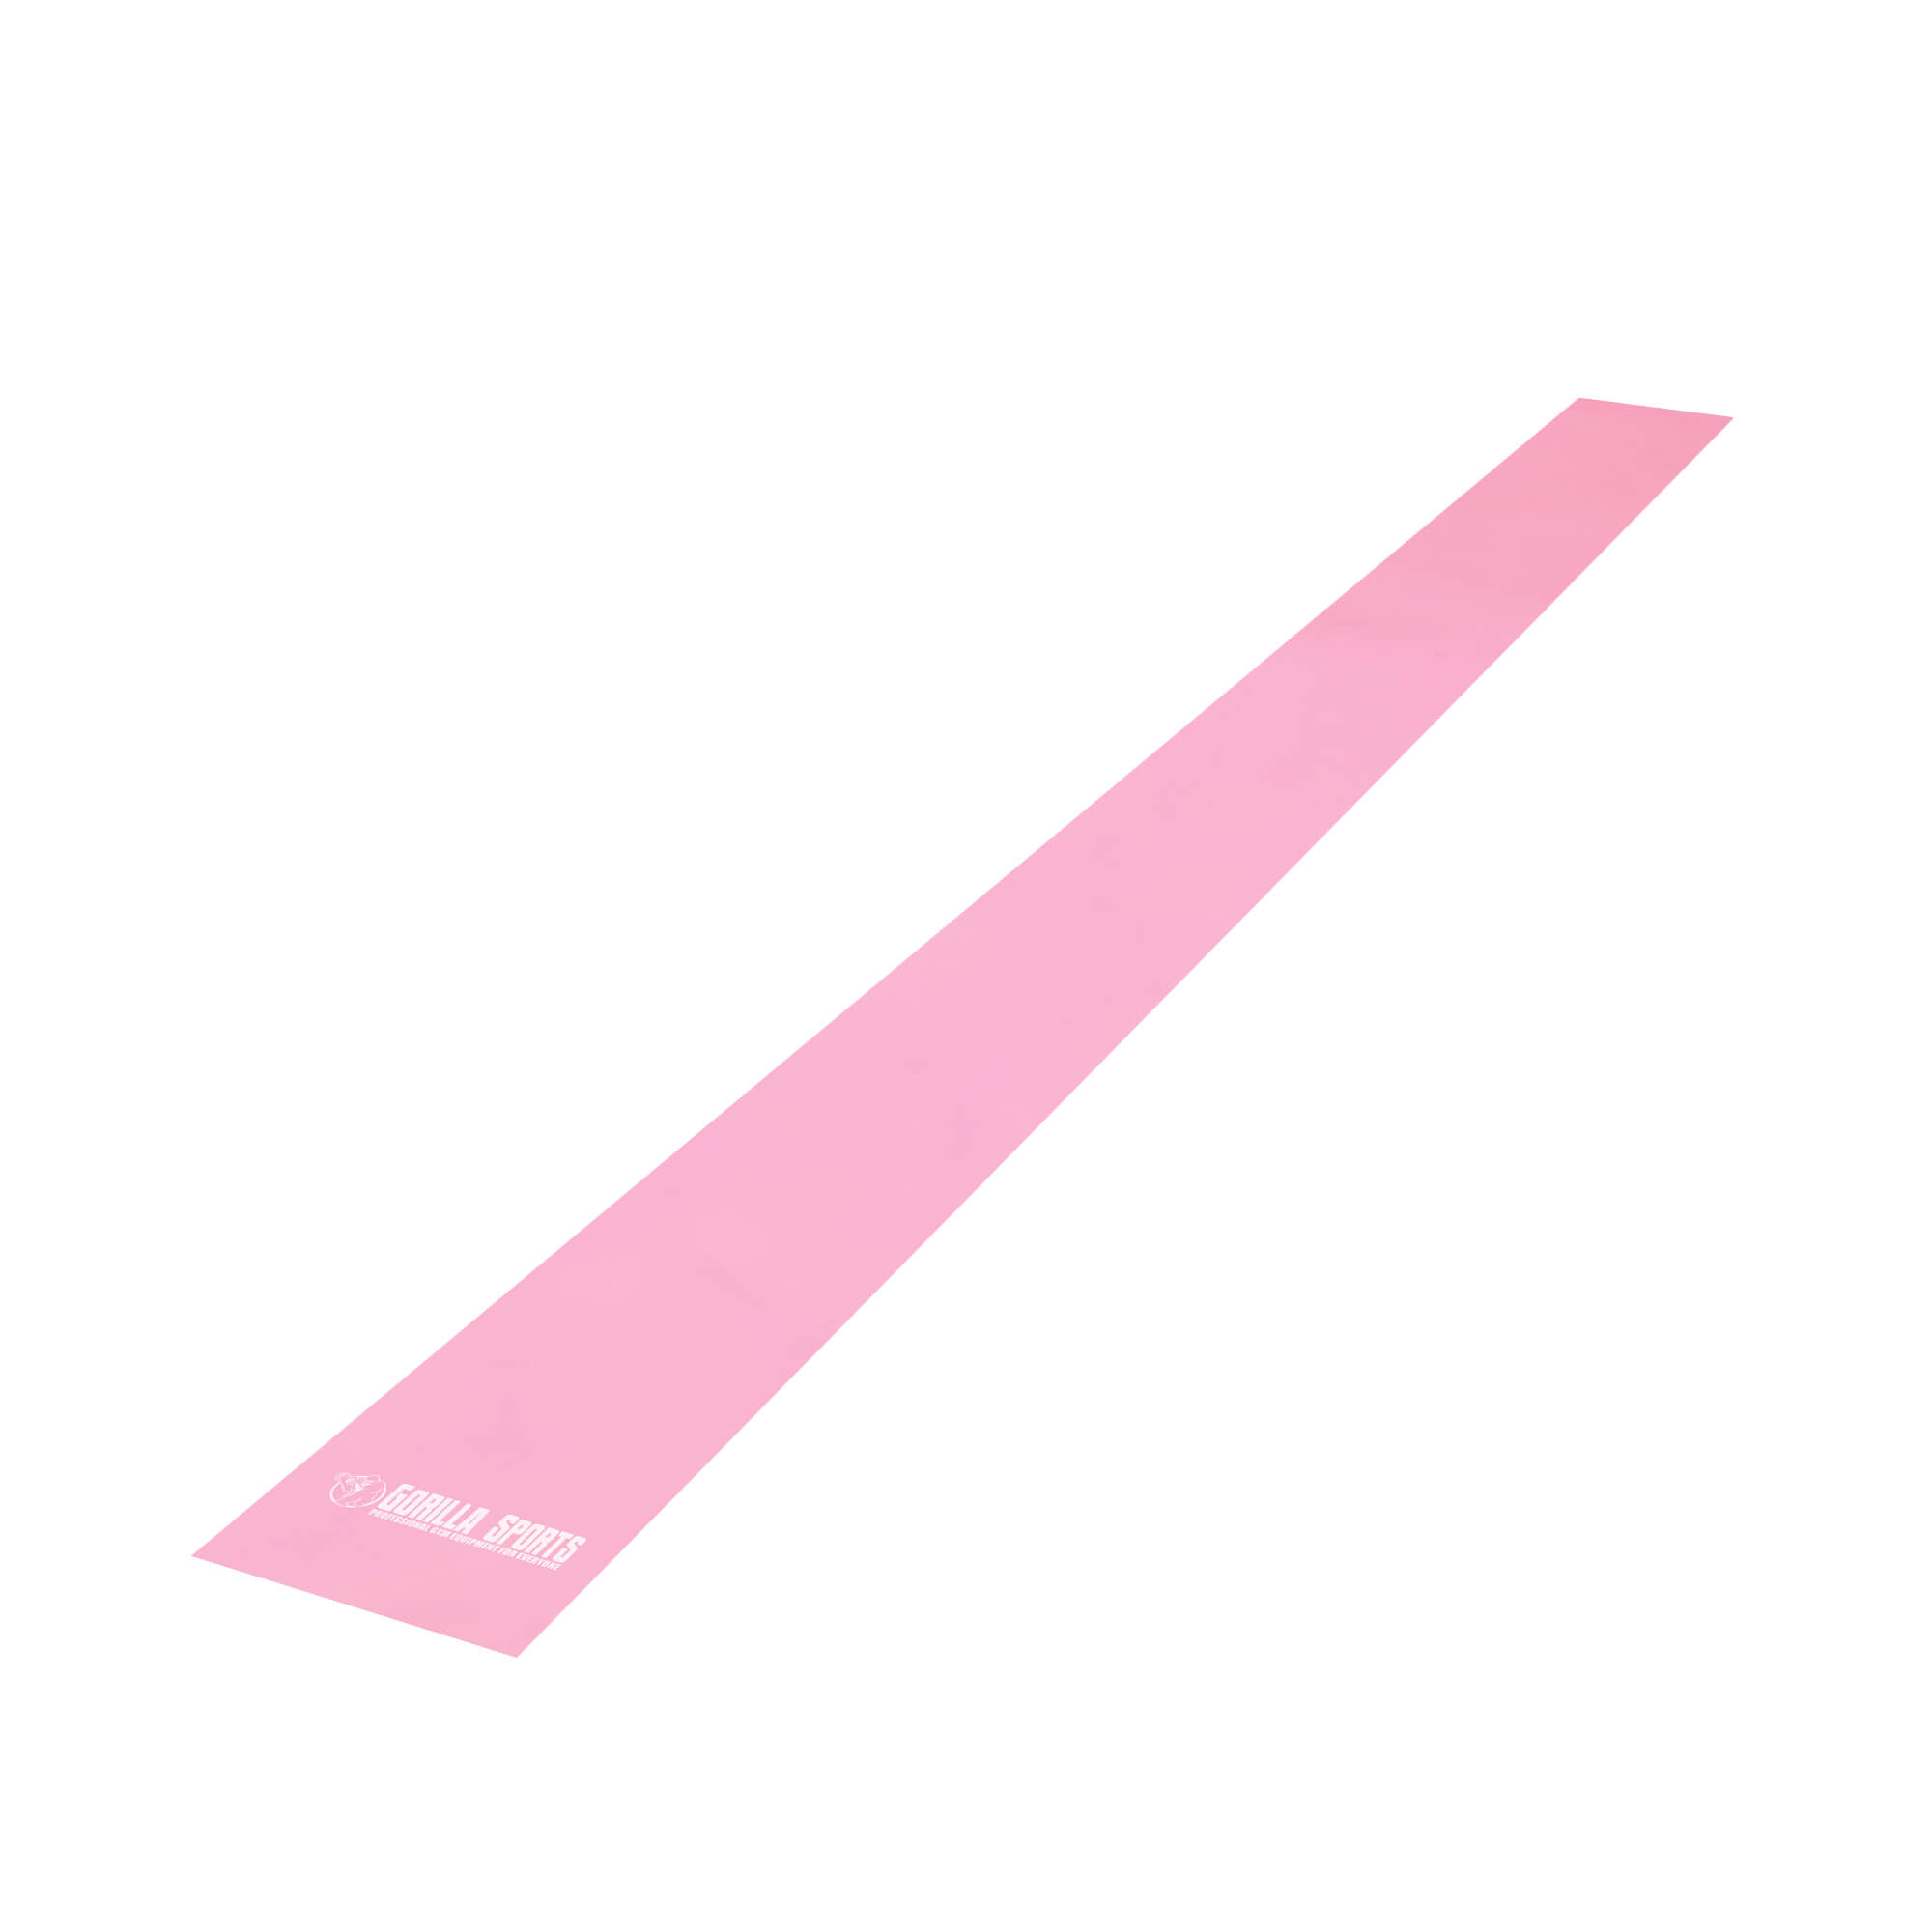 Fitnessband Latex Pink 120 cm